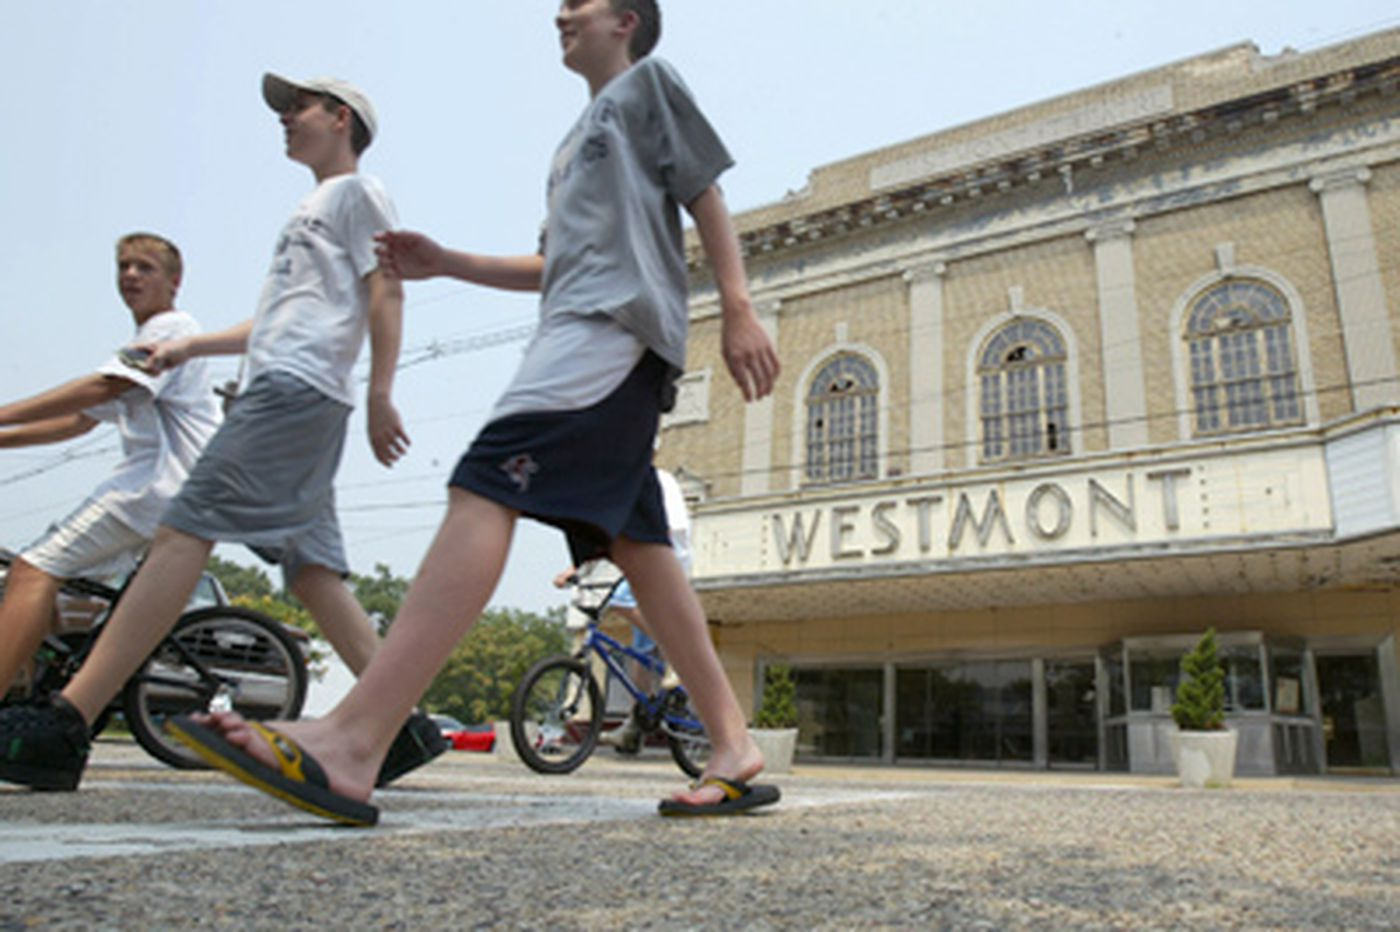 Kevin Riordan: Is the Westmont Theatre worth restoring?